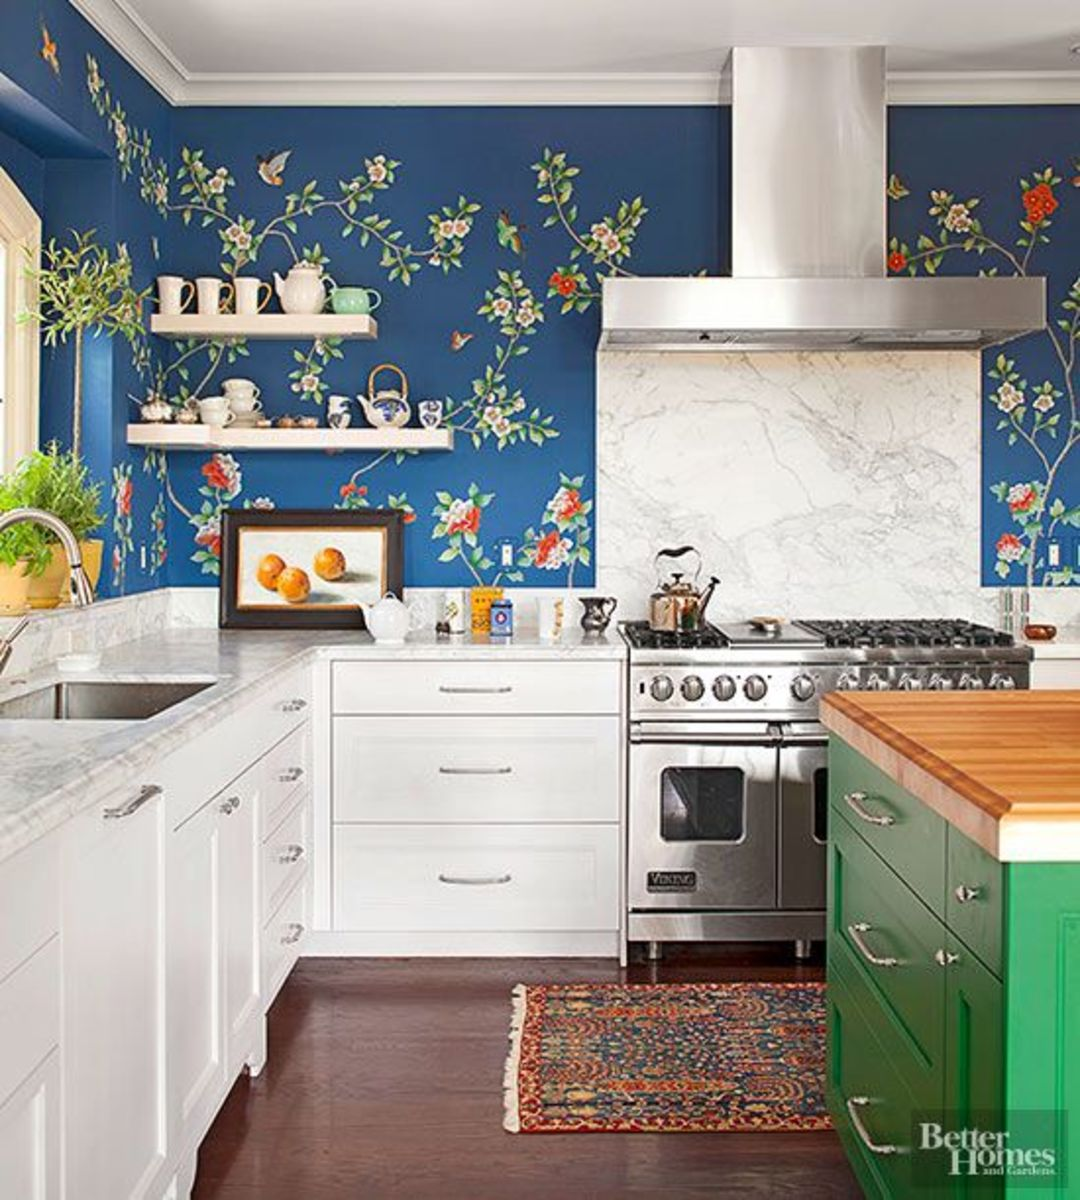 Make a statement with garden-themed kitchen wallpaper designs. The light  blue backdrop is traditional white cabinetry, granite countertops and open upper shelves.